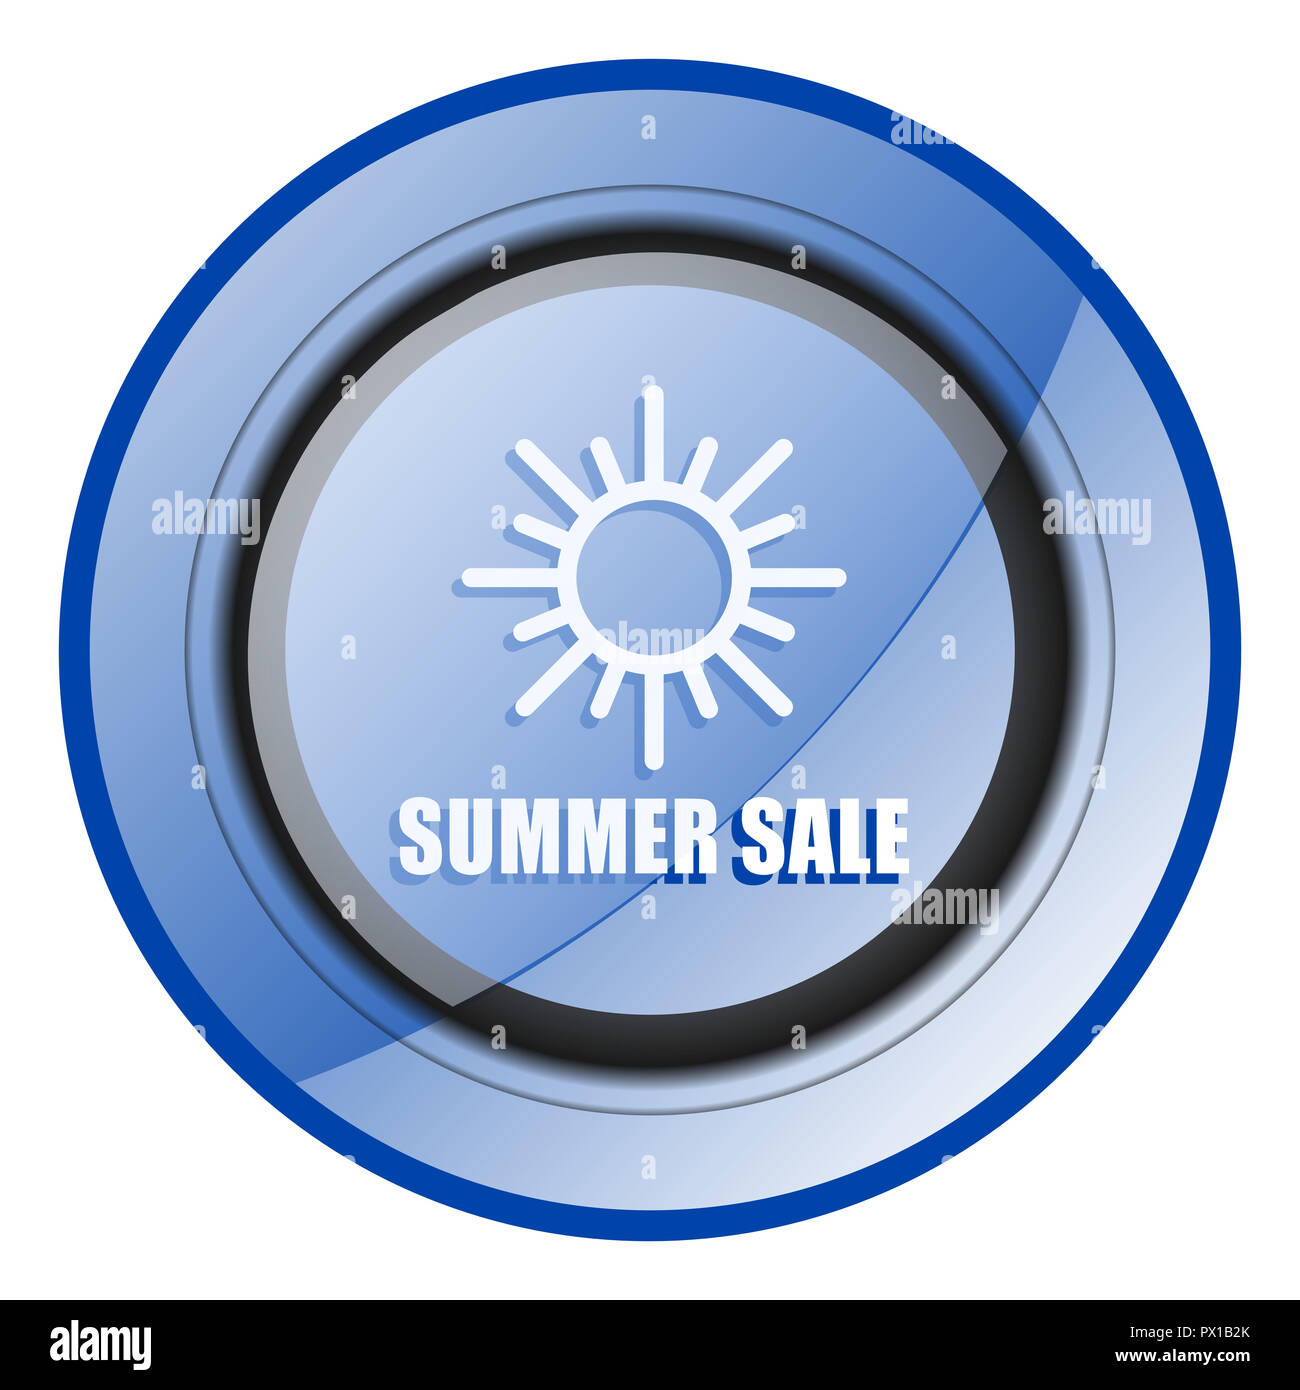 Summer sale blue glossy web icon - Stock Image